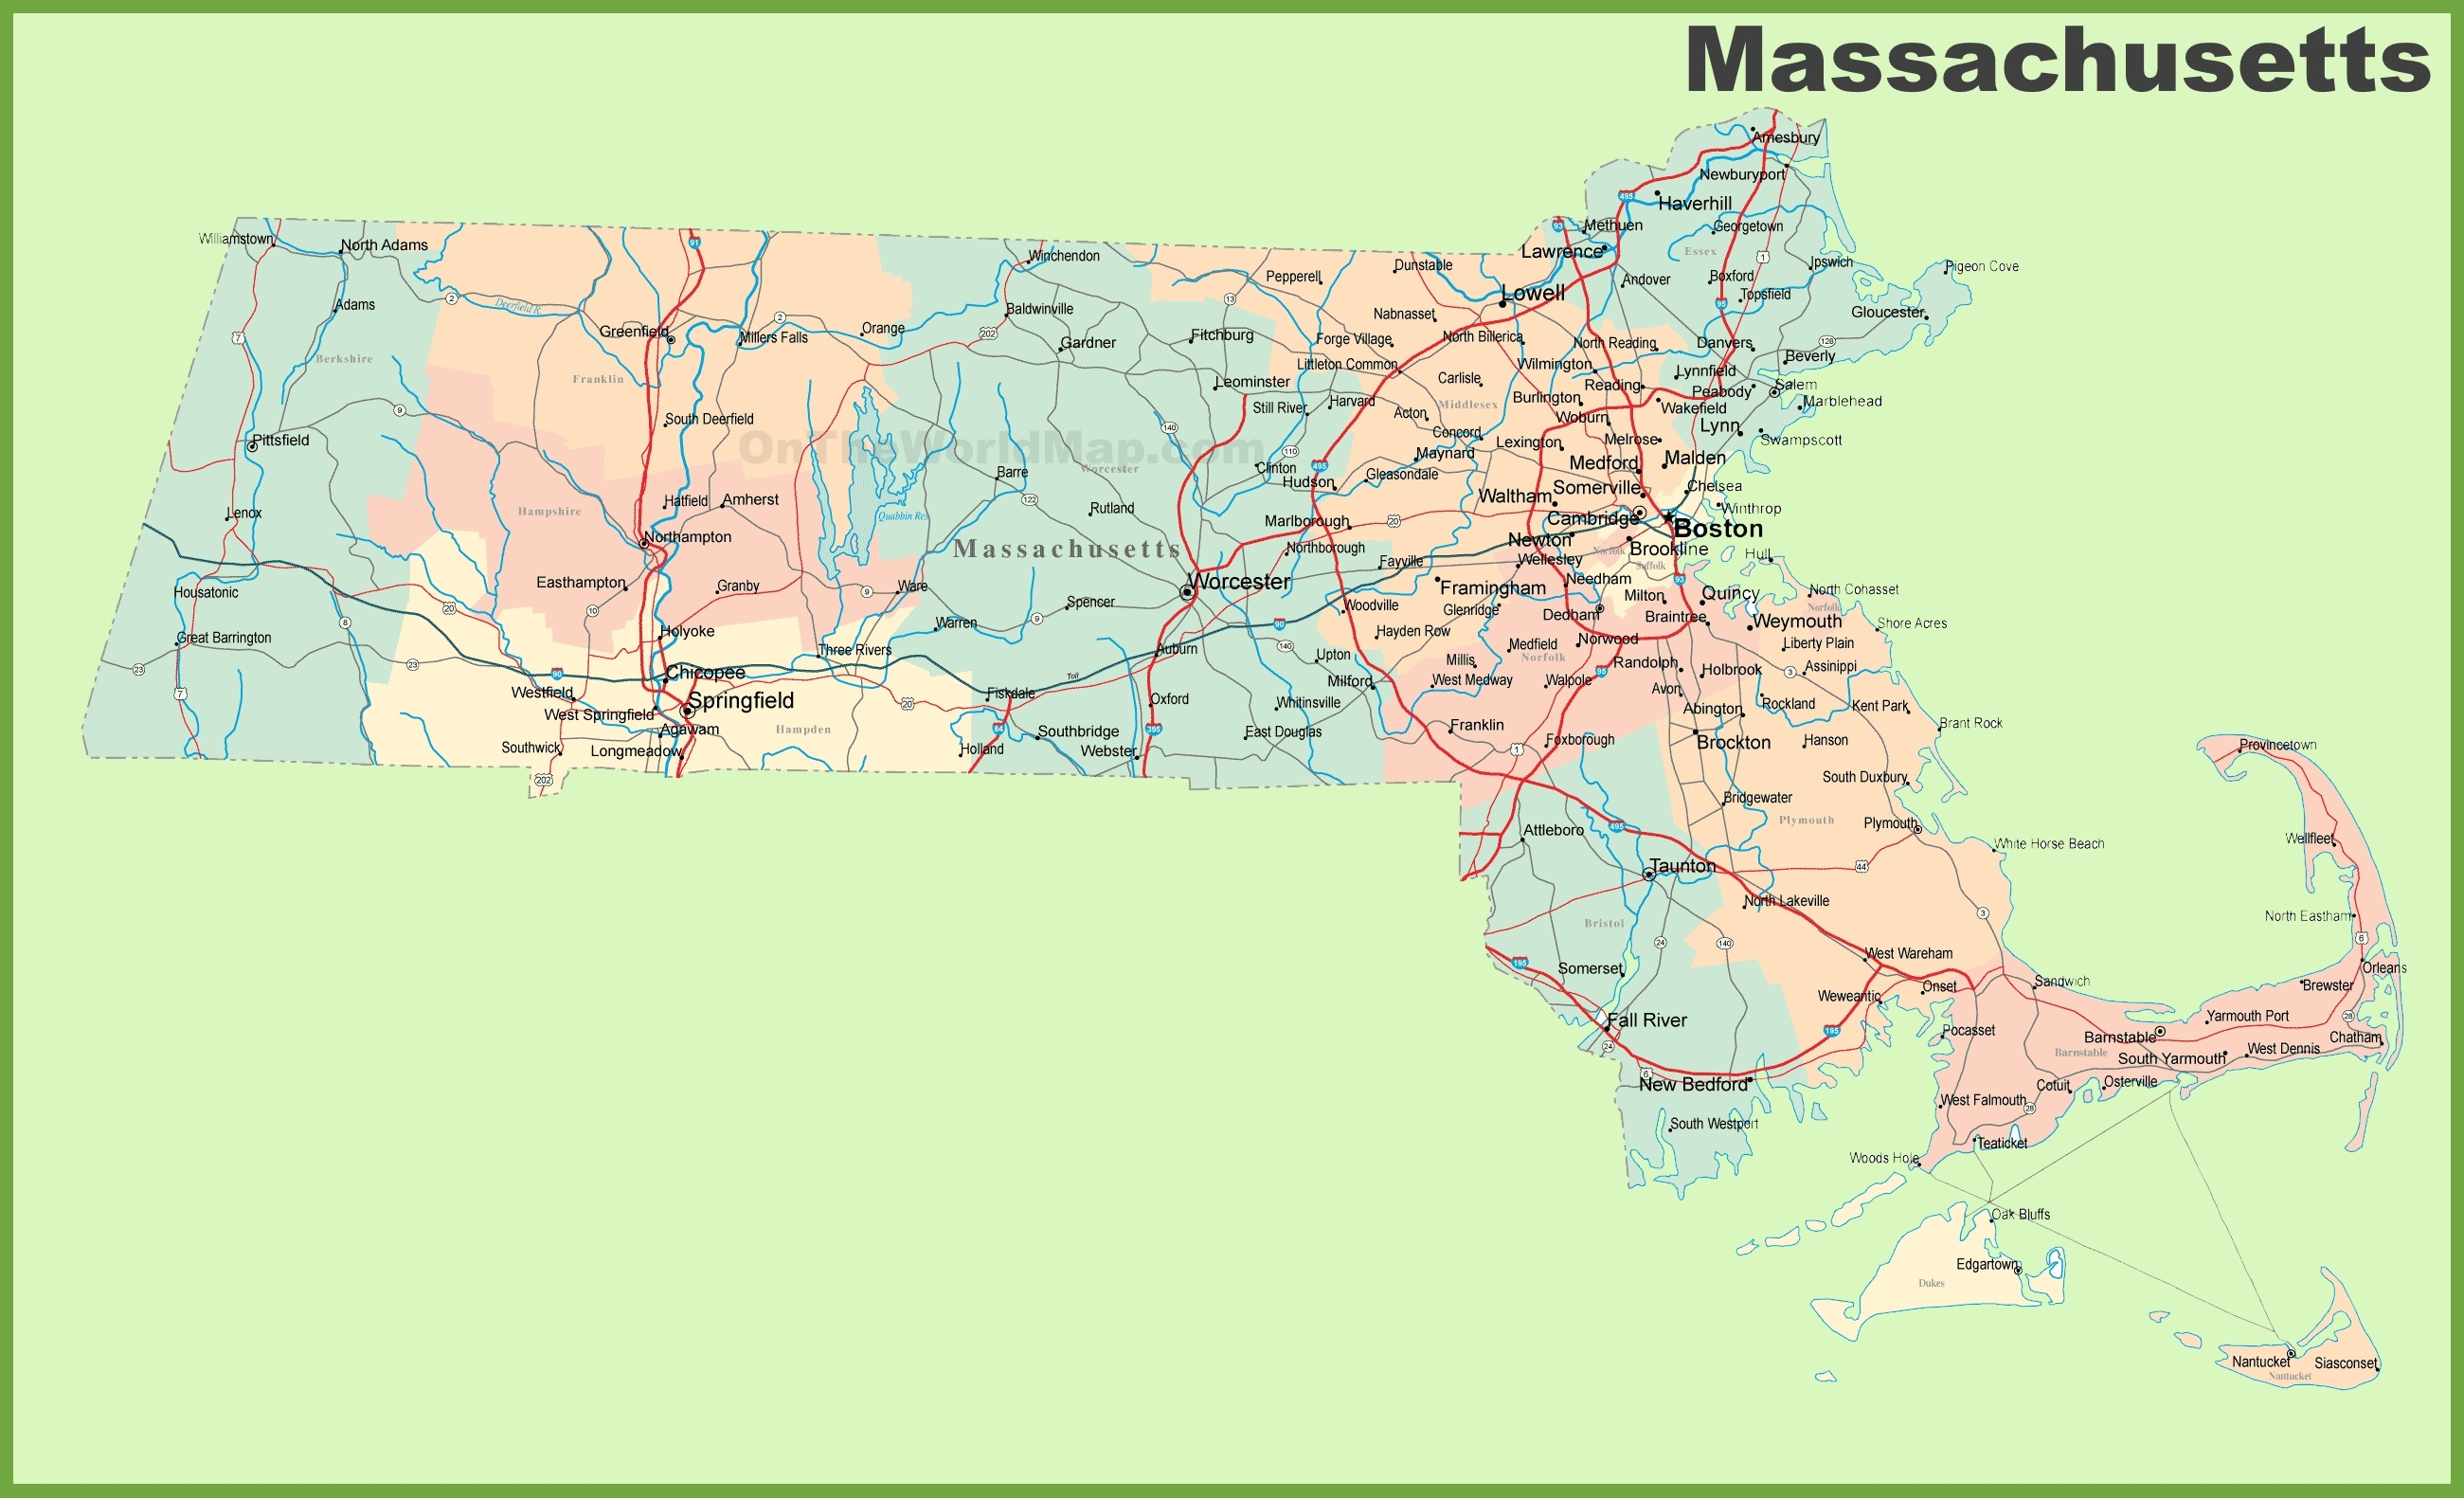 Massachusetts Map With Cities road map of massachusetts with cities ⋆ Blue Sky